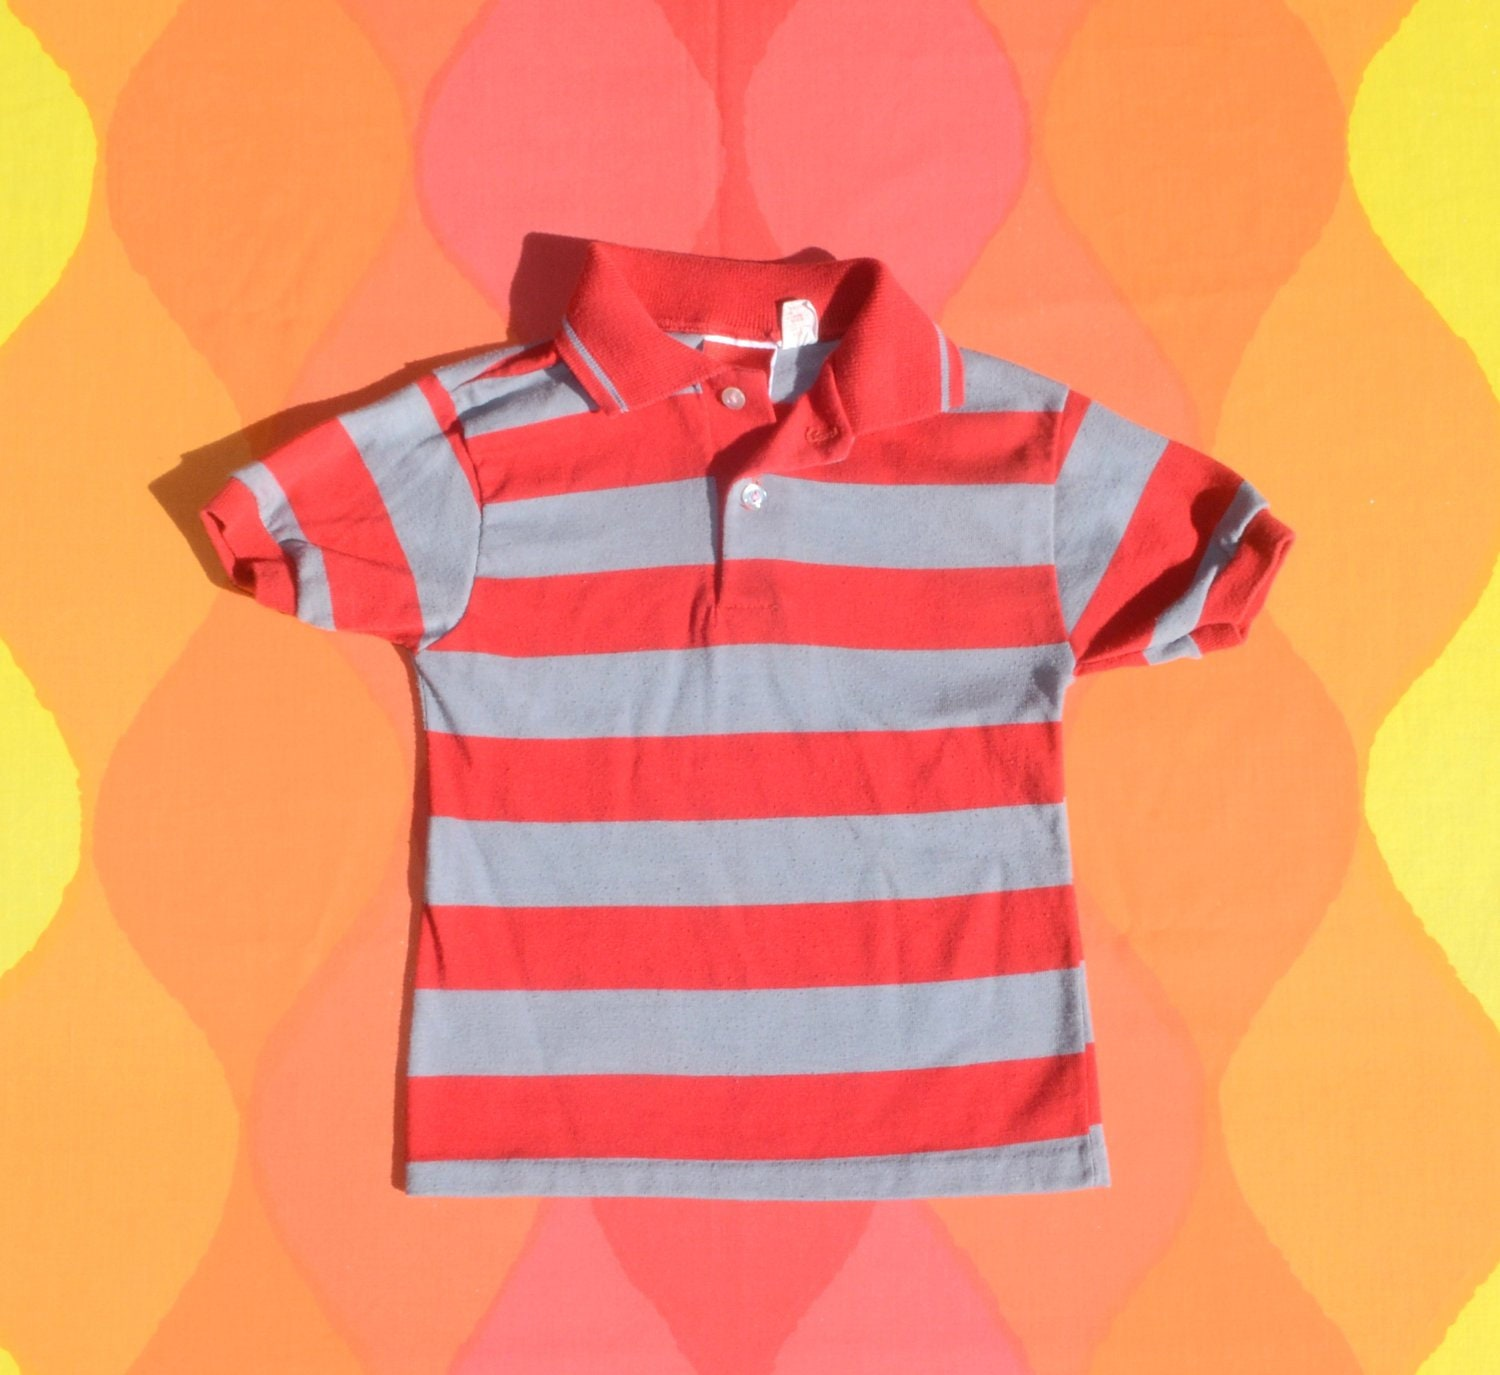 Vintage 80s Kids Golf Shirt Stripes Polo Red Gray Youth Etsy